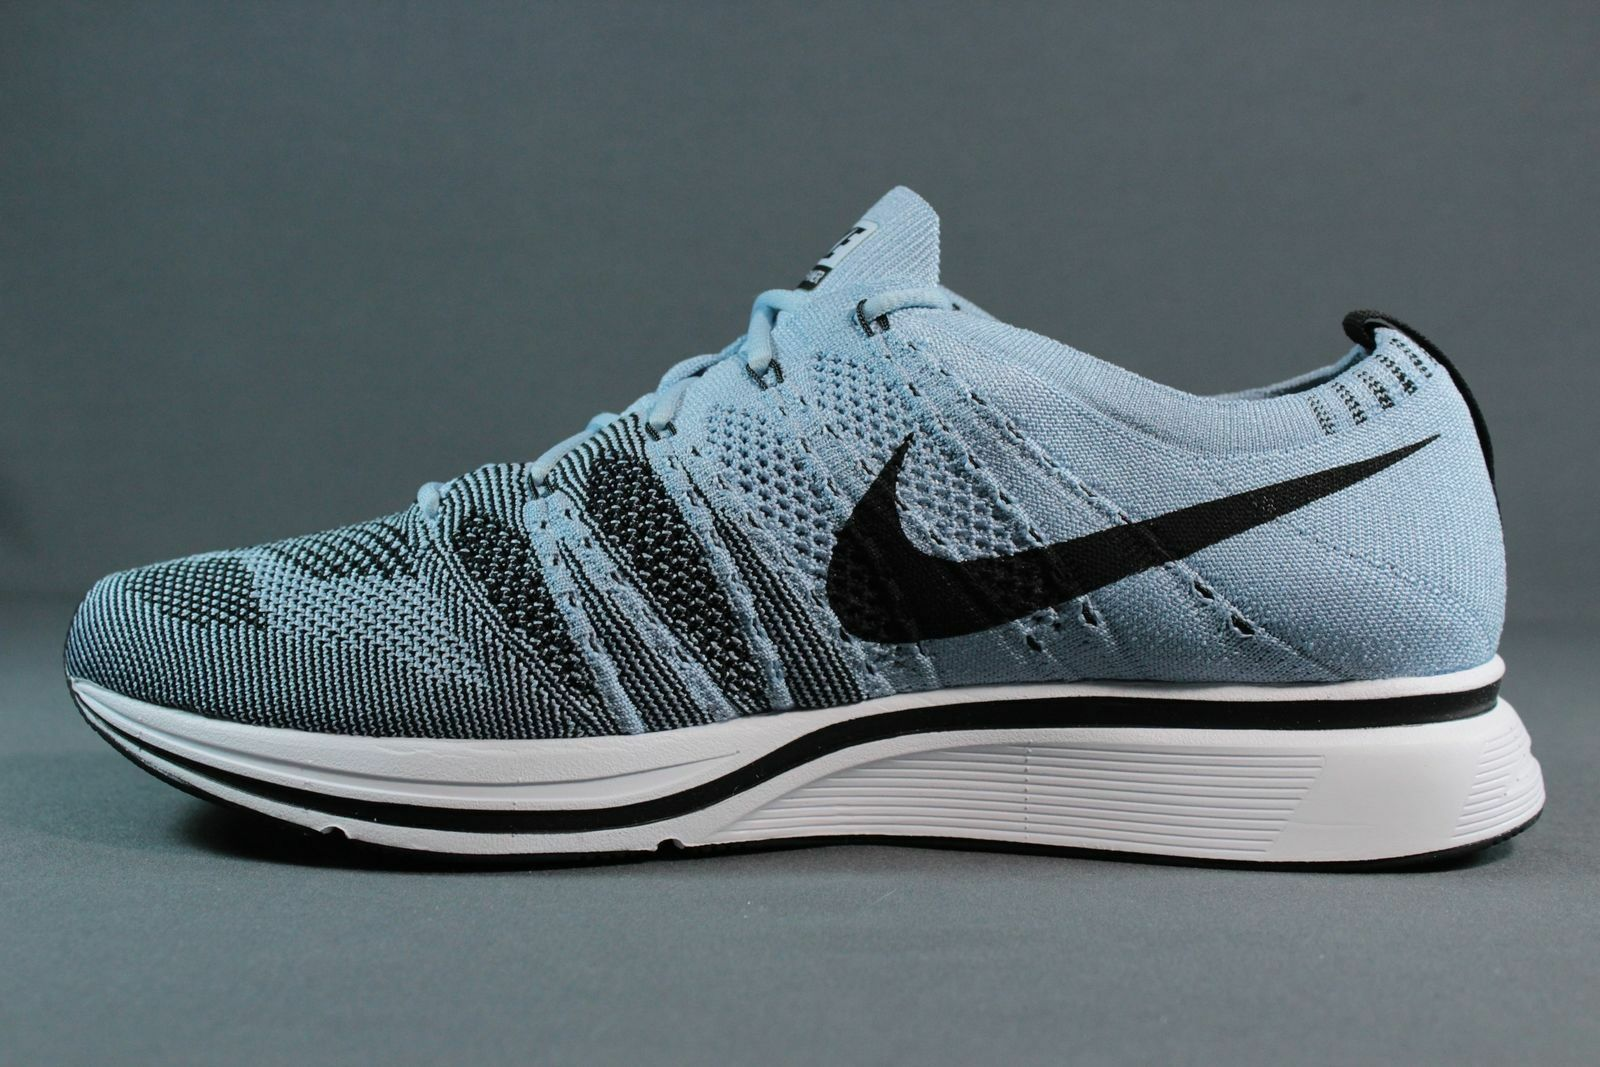 NIKE FLYKNIT TRAINER AH8396-400 DS CIRRUS BLUE BLACK WHITE DS AH8396-400 SIZE: 13 OFF WHITE a1f090